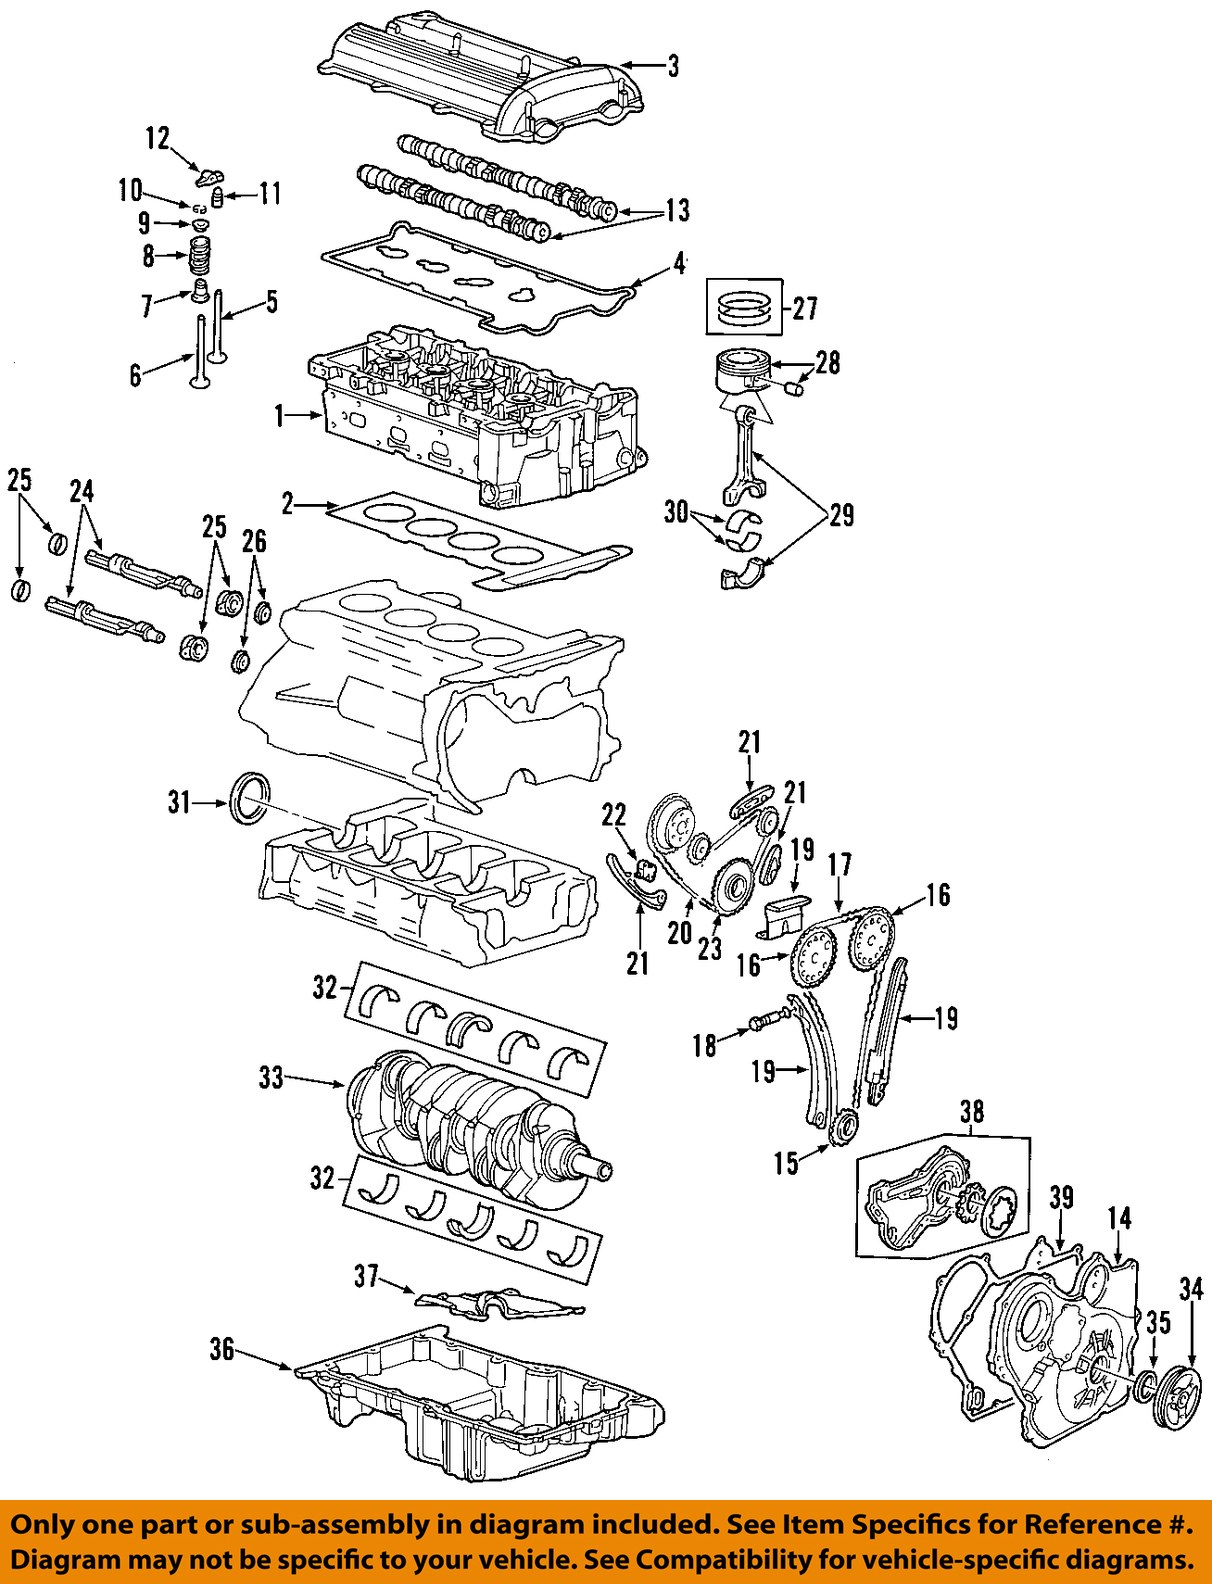 hight resolution of saturn l200 engine diagram wiring diagram sample 2002 saturn l200 engine diagram 2002 saturn l200 engine diagram